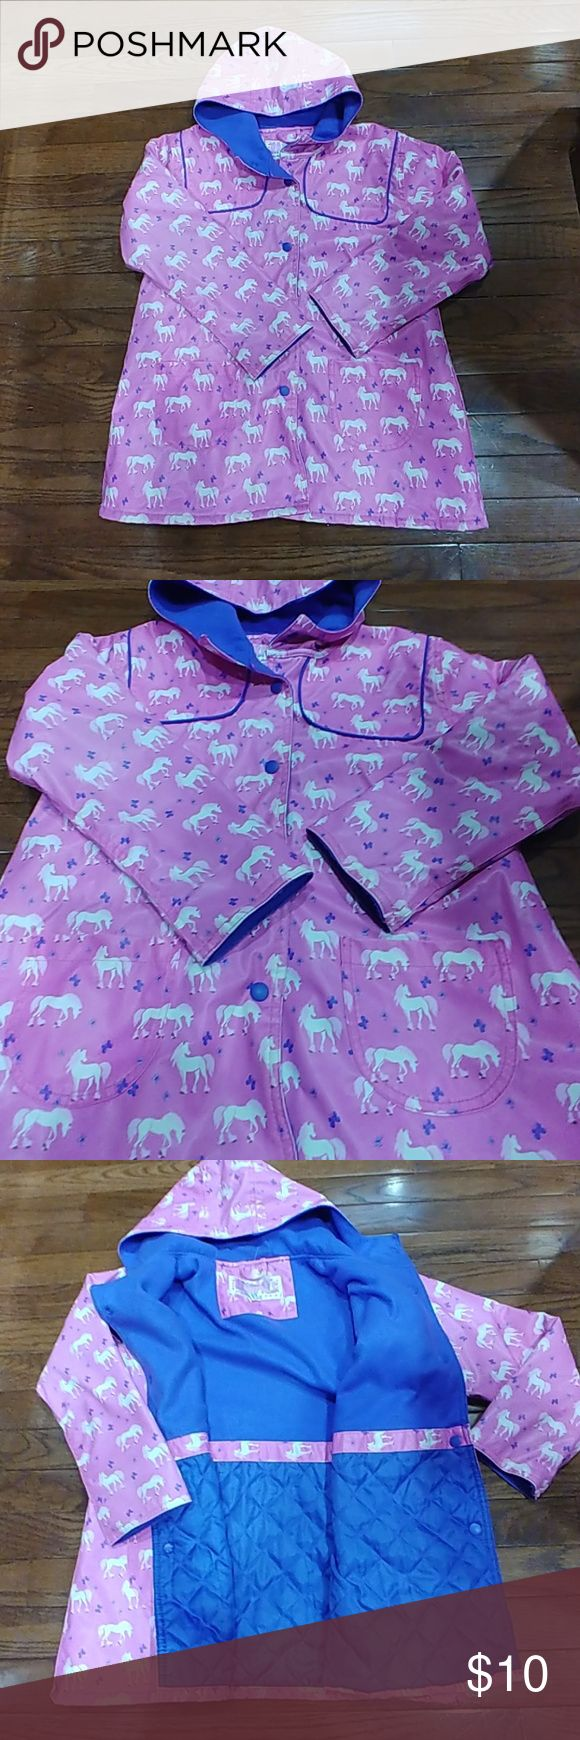 Horse Raincoat Good Used Condition. Signs of wear from normal use. Adorable Horse Raincoat with Fleece Lining. Size Girls' 5/6 Rainpals Jackets & Coats Raincoats